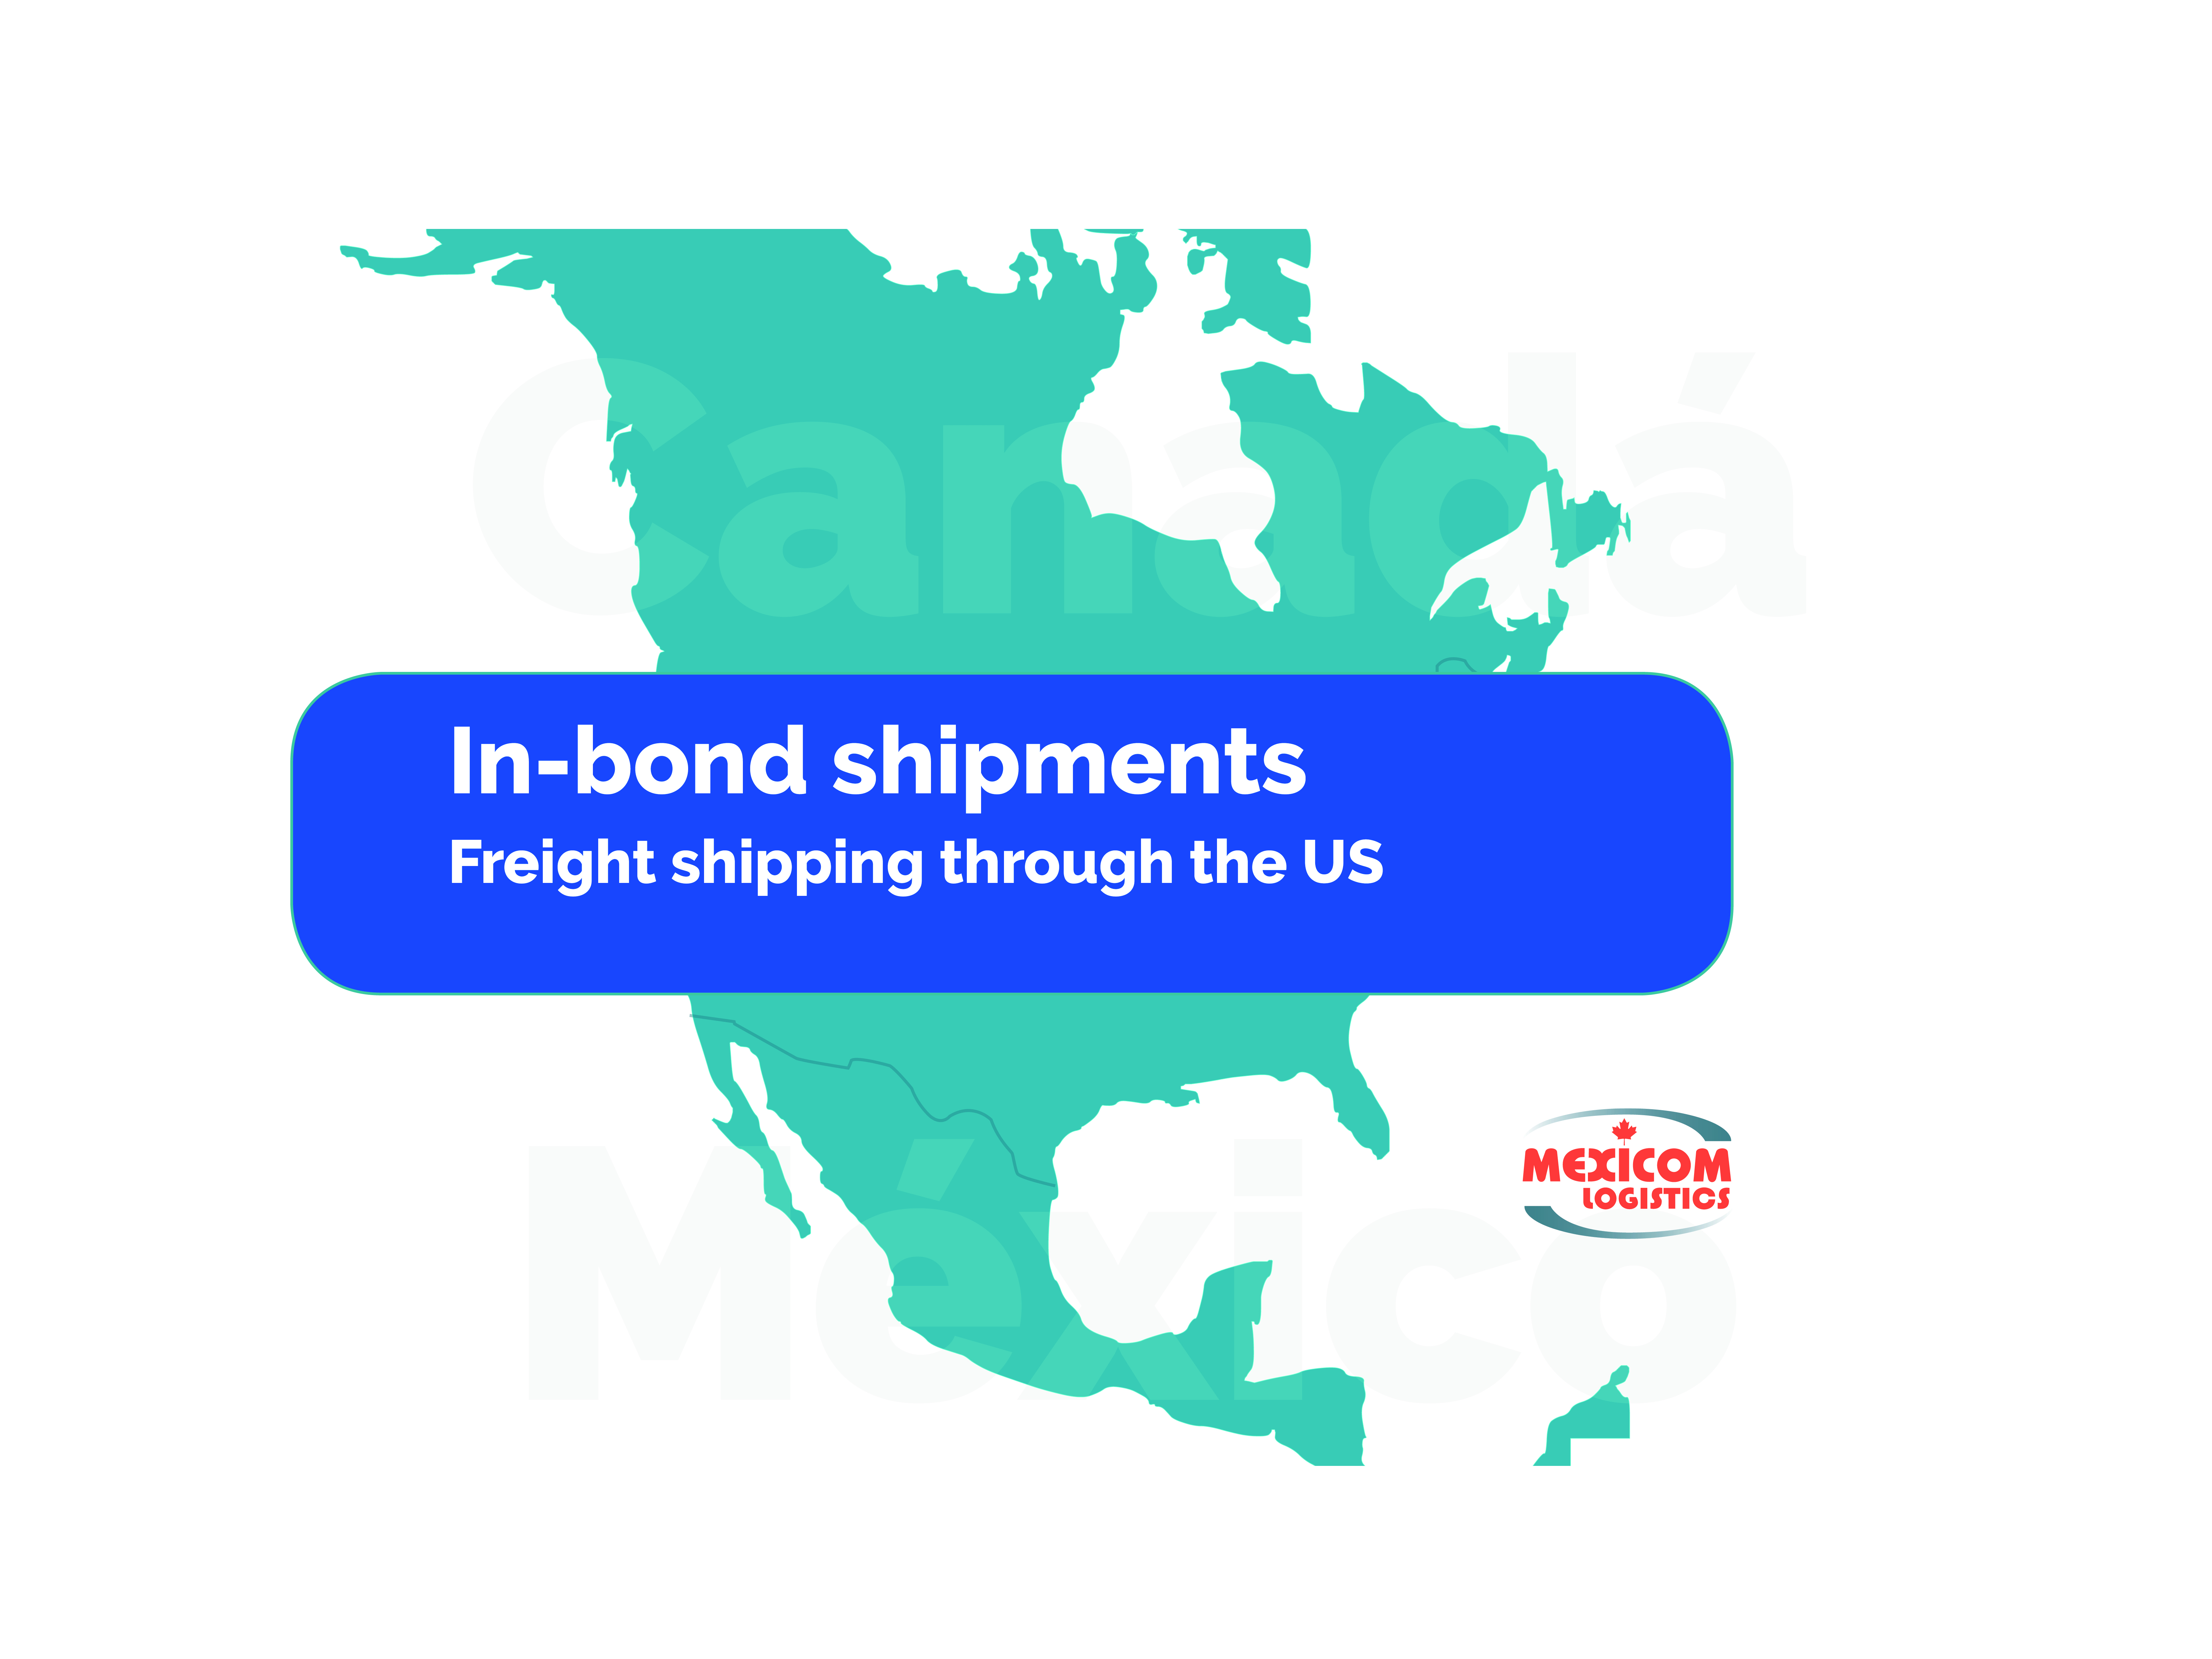 Here is what you need to know about in-bond shipments being